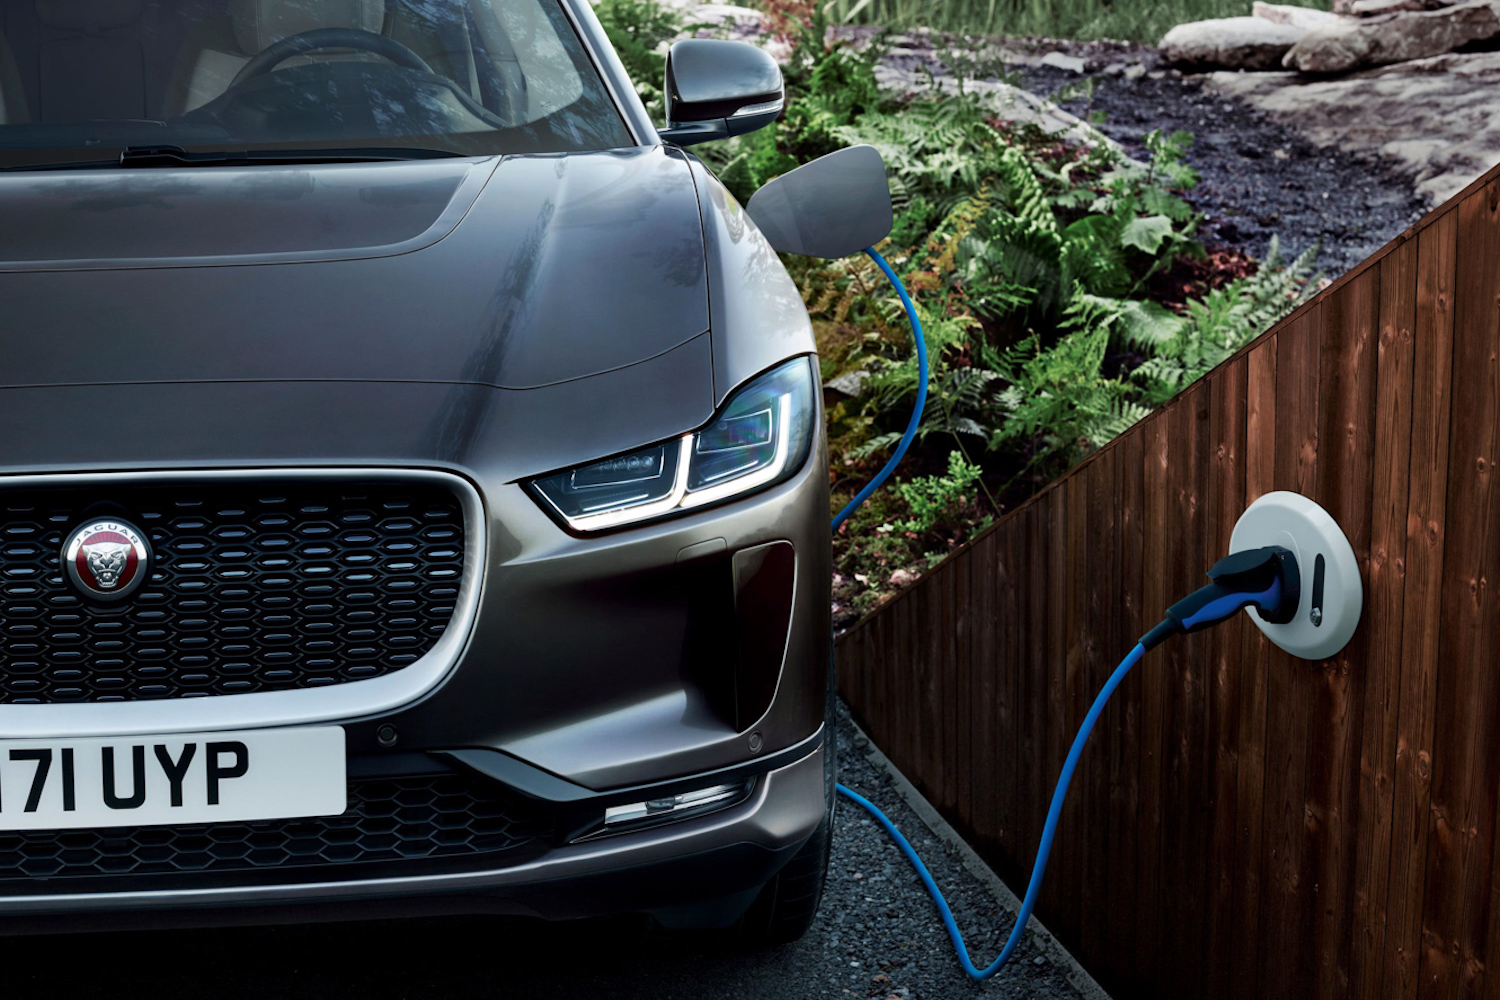 Complete Car Features | Electric revolution needs deeper thinking